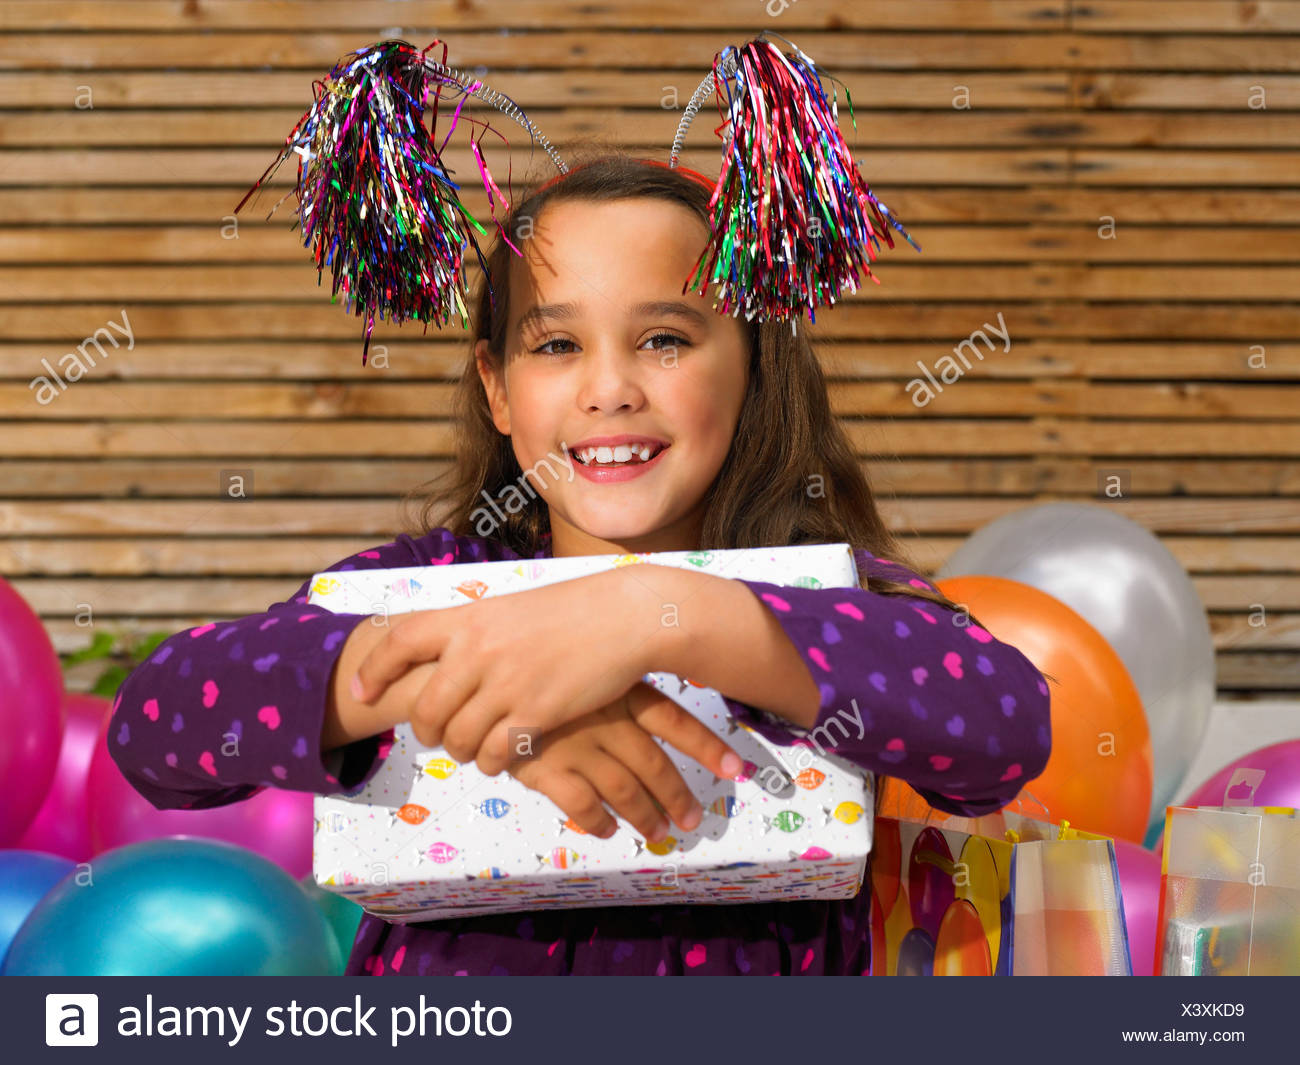 Girl (8-10) holding birthday present - Stock Image